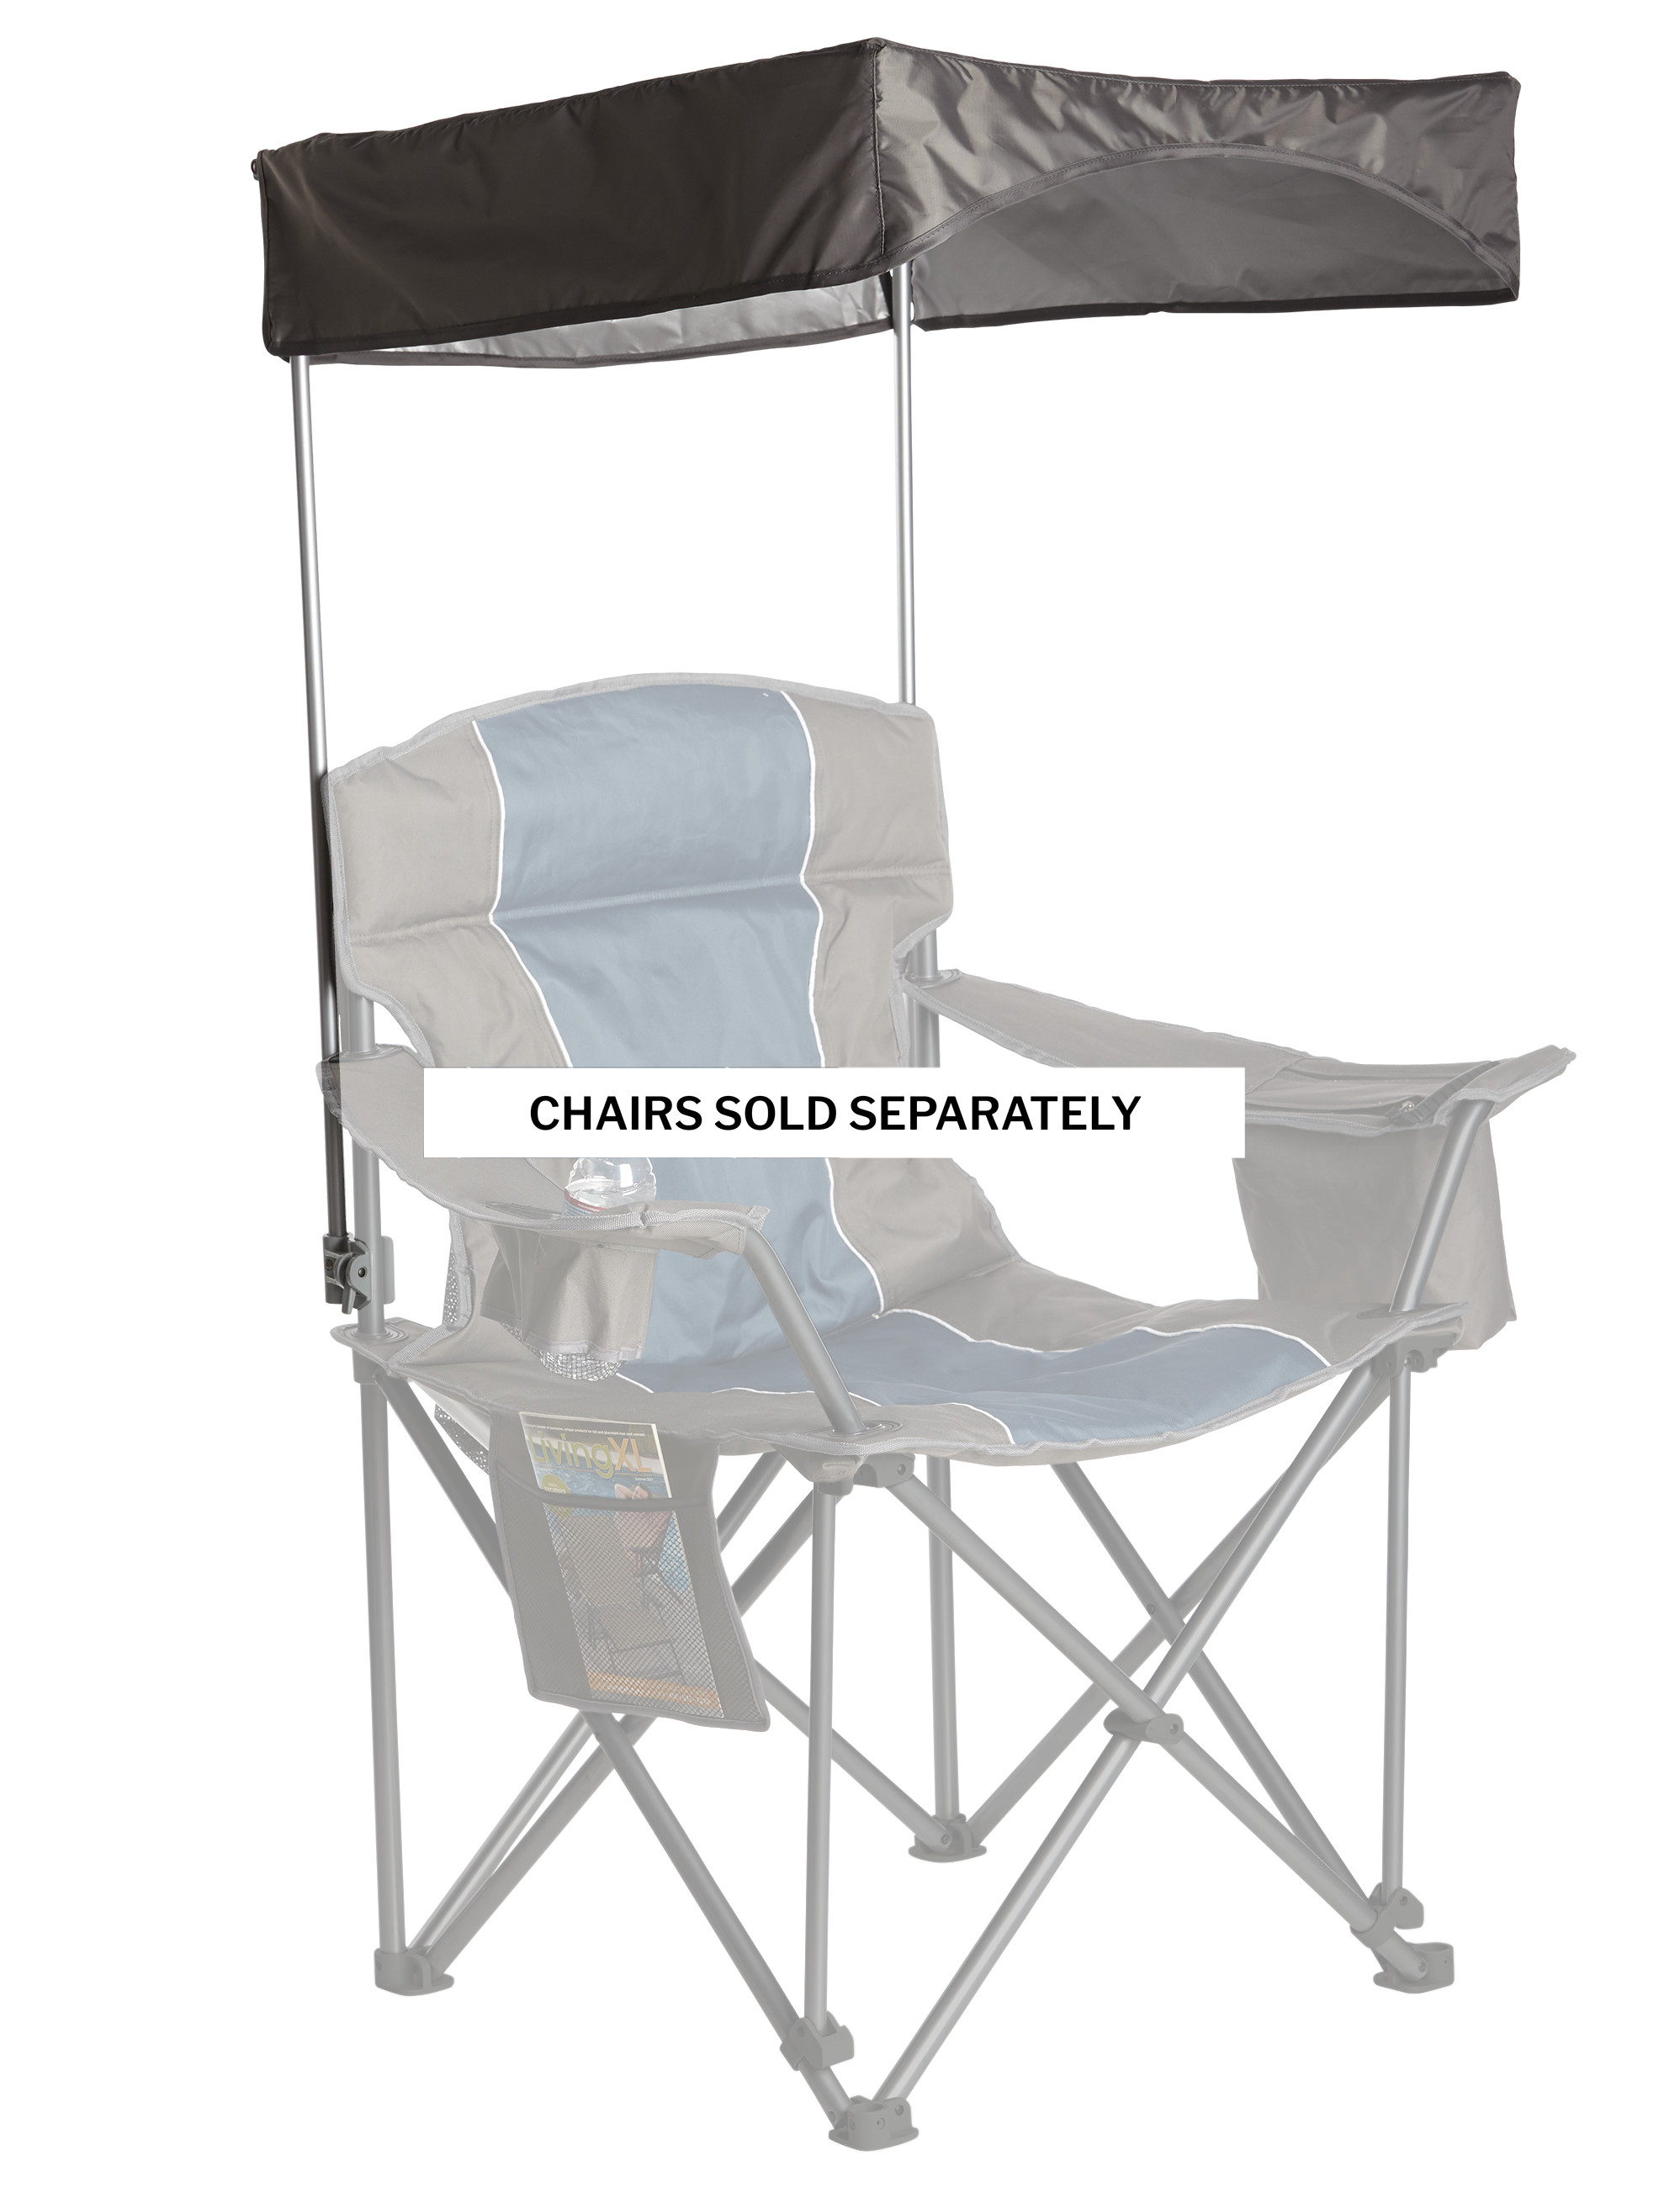 Oversized Folding Chairs